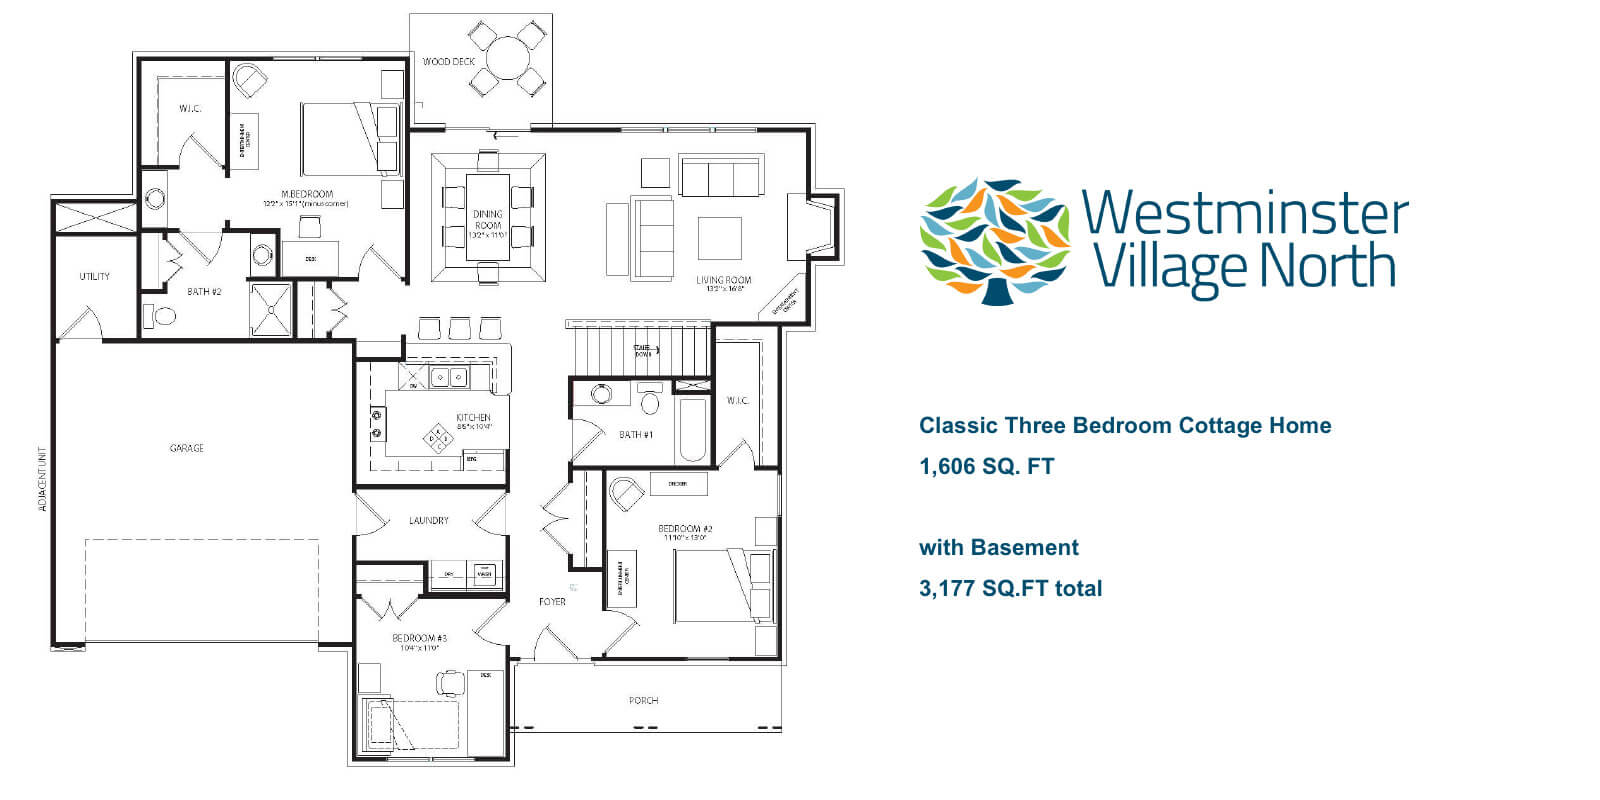 Three Bedroom Cottage Home floor plan